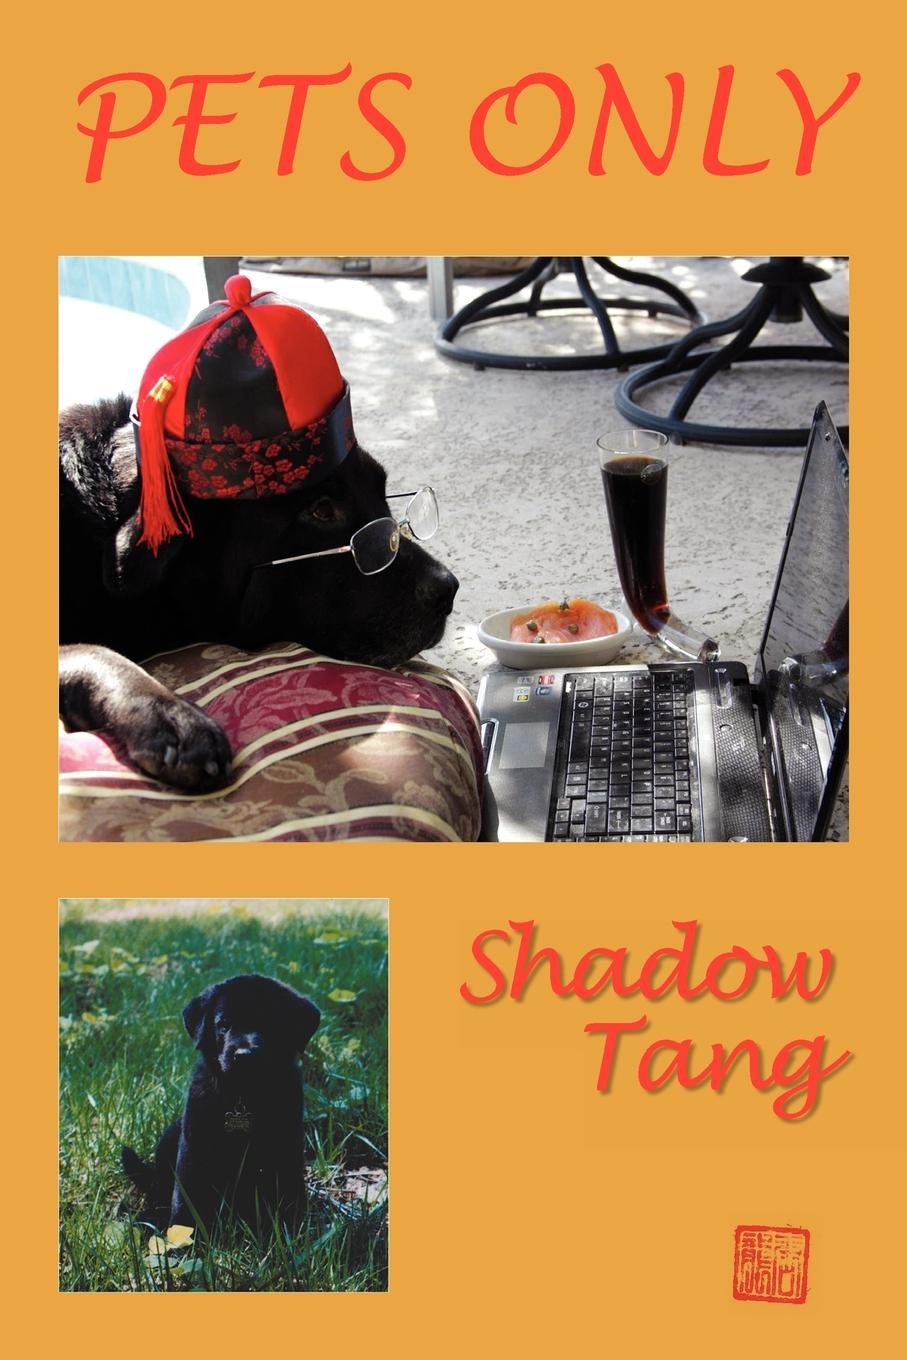 Shadow Tang Pets Only